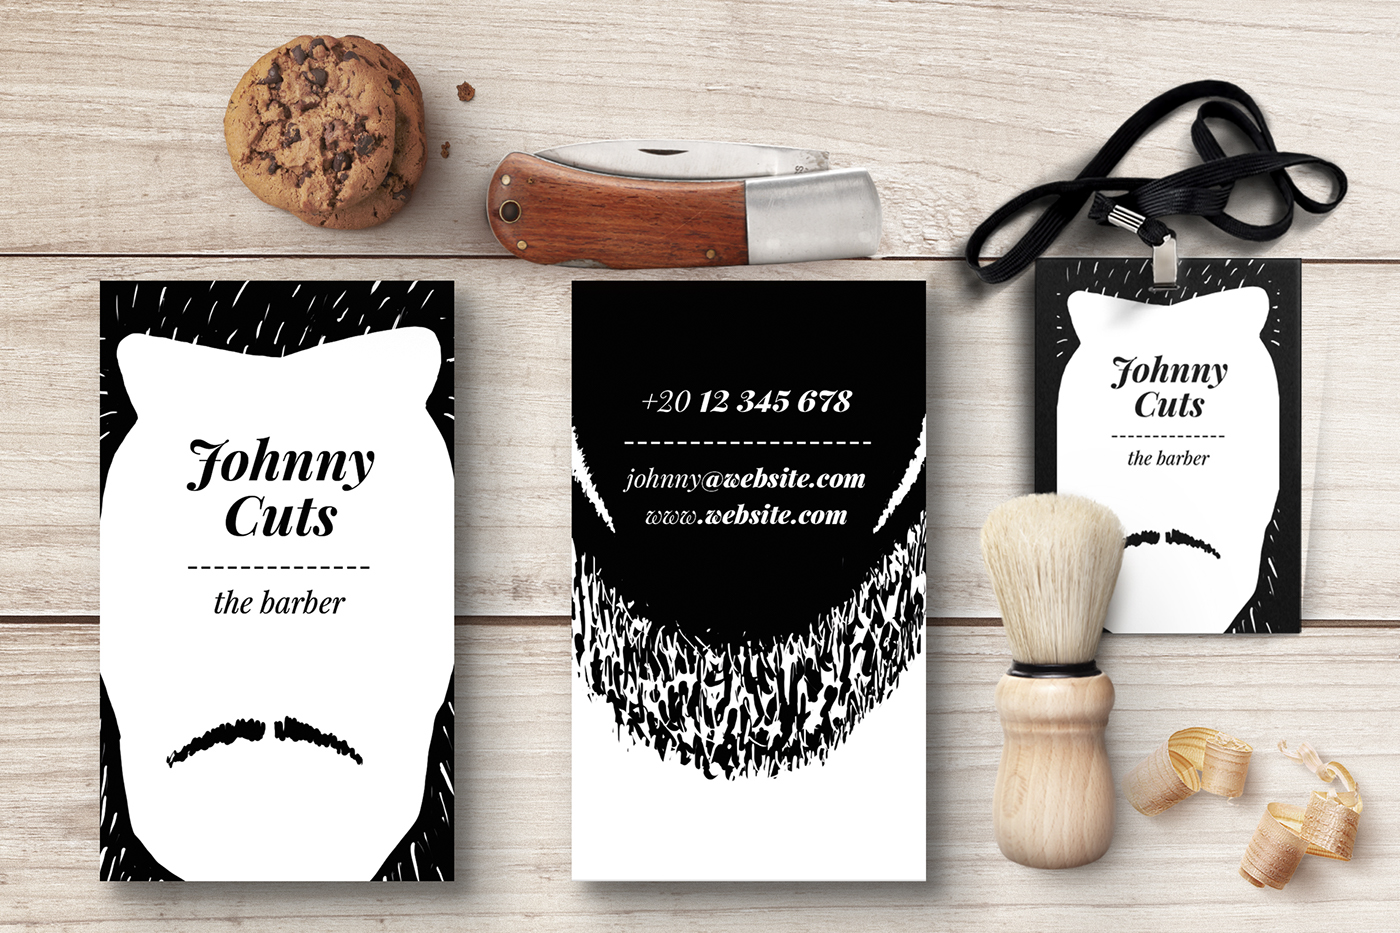 The barber business cards templates on behance the barber business cards templates choose your hairstyle and your beard then edit your name and youre done customize the business card to match your flashek Choice Image